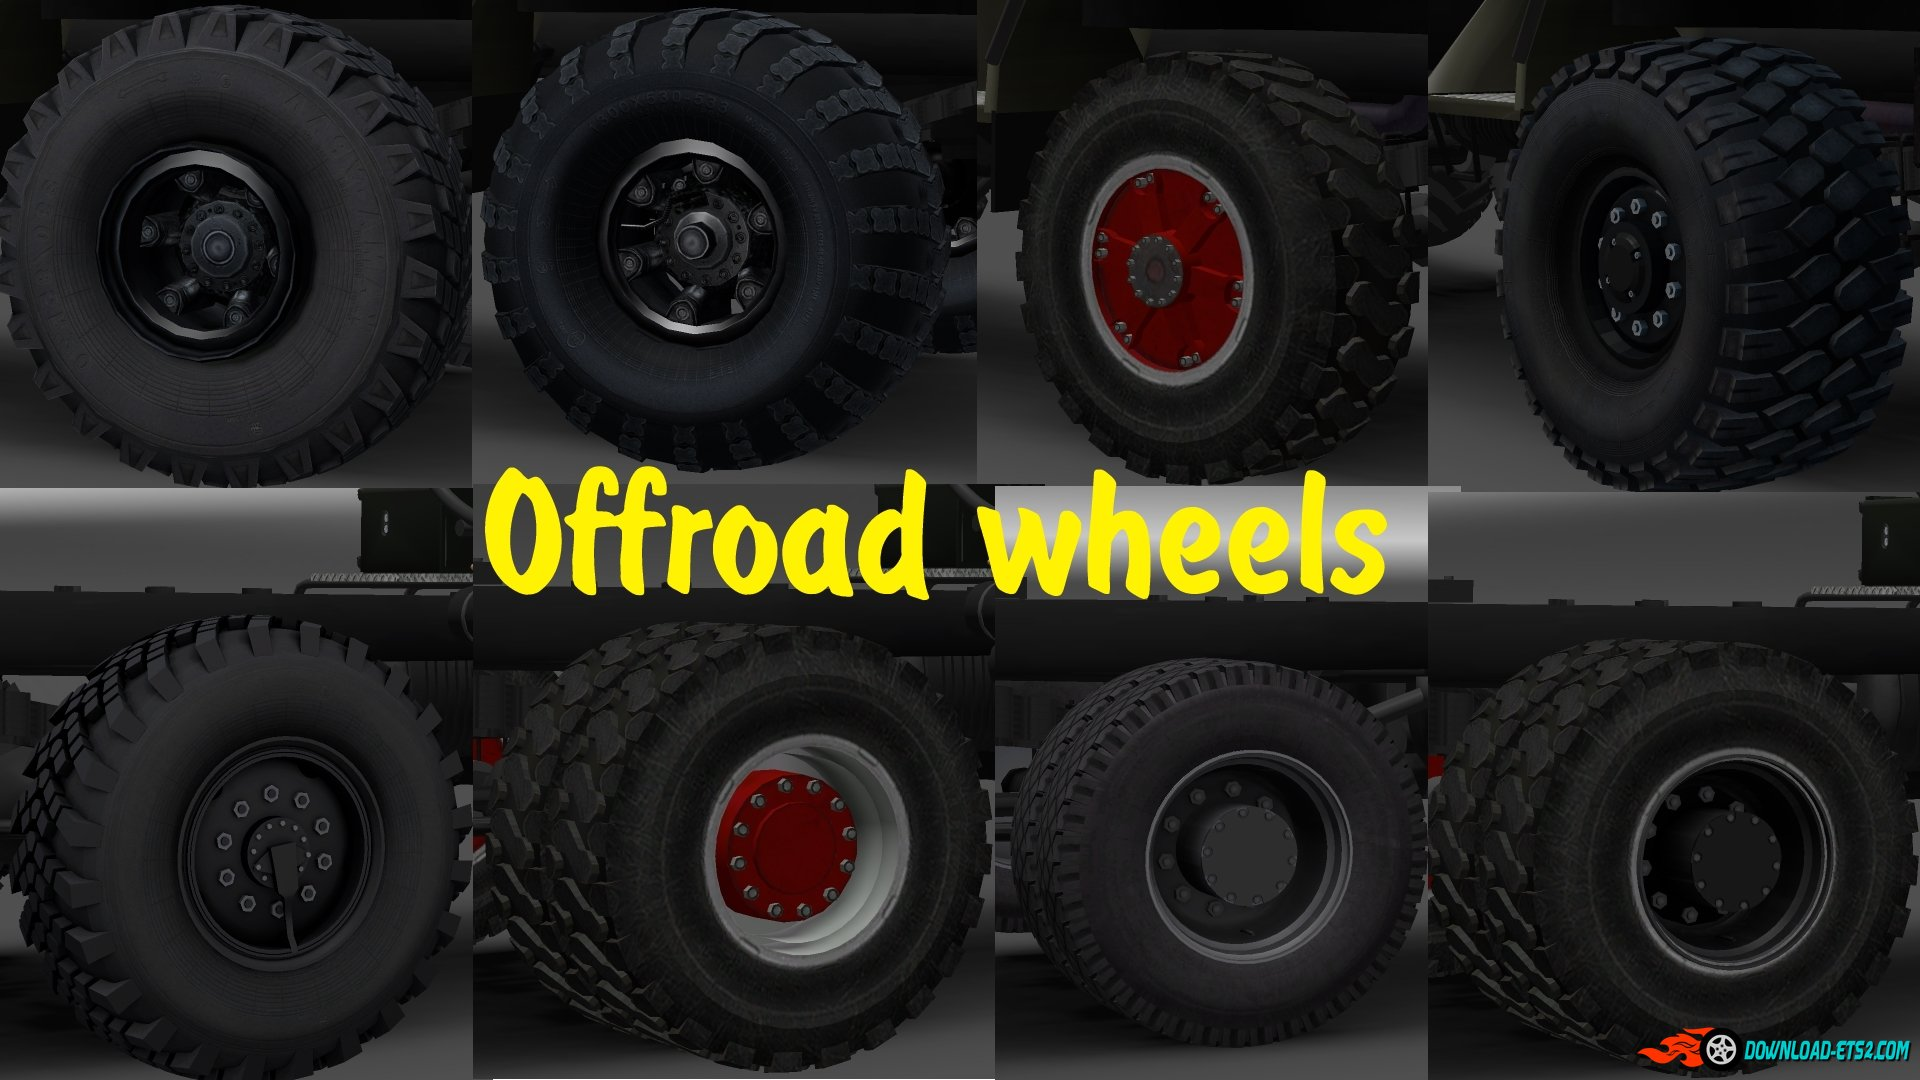 Off-road wheels